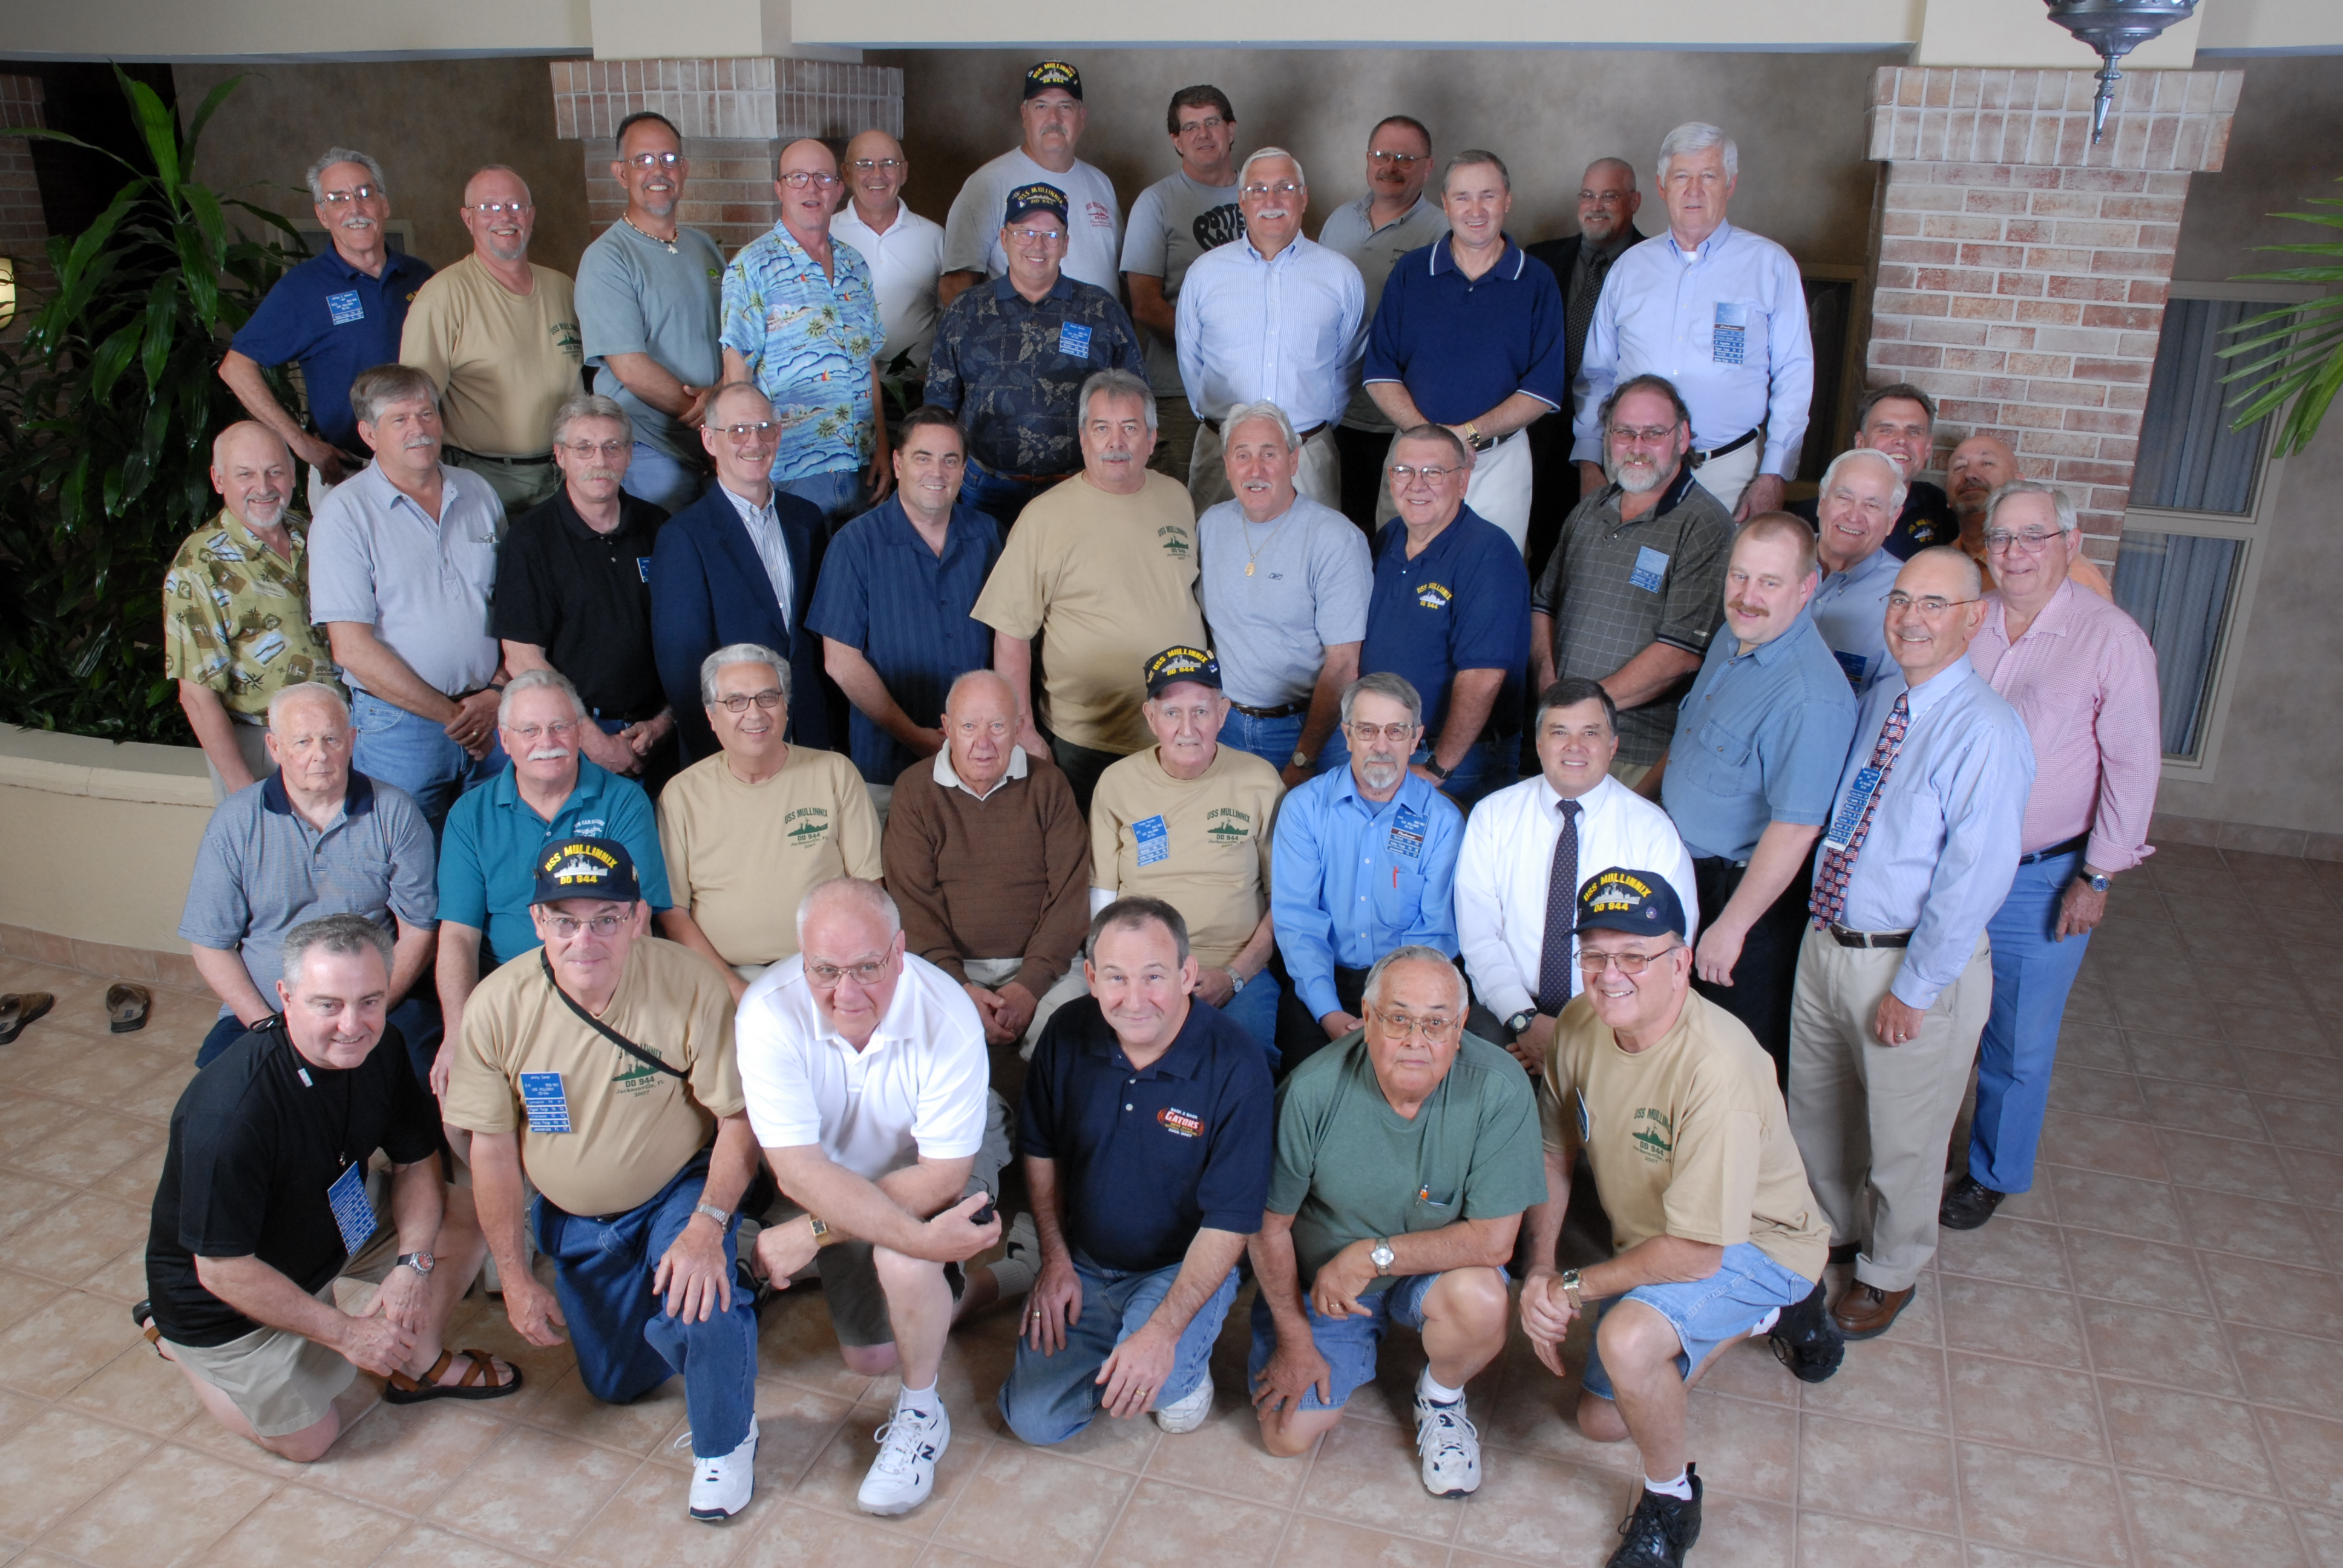 2007 Reunion Attendees